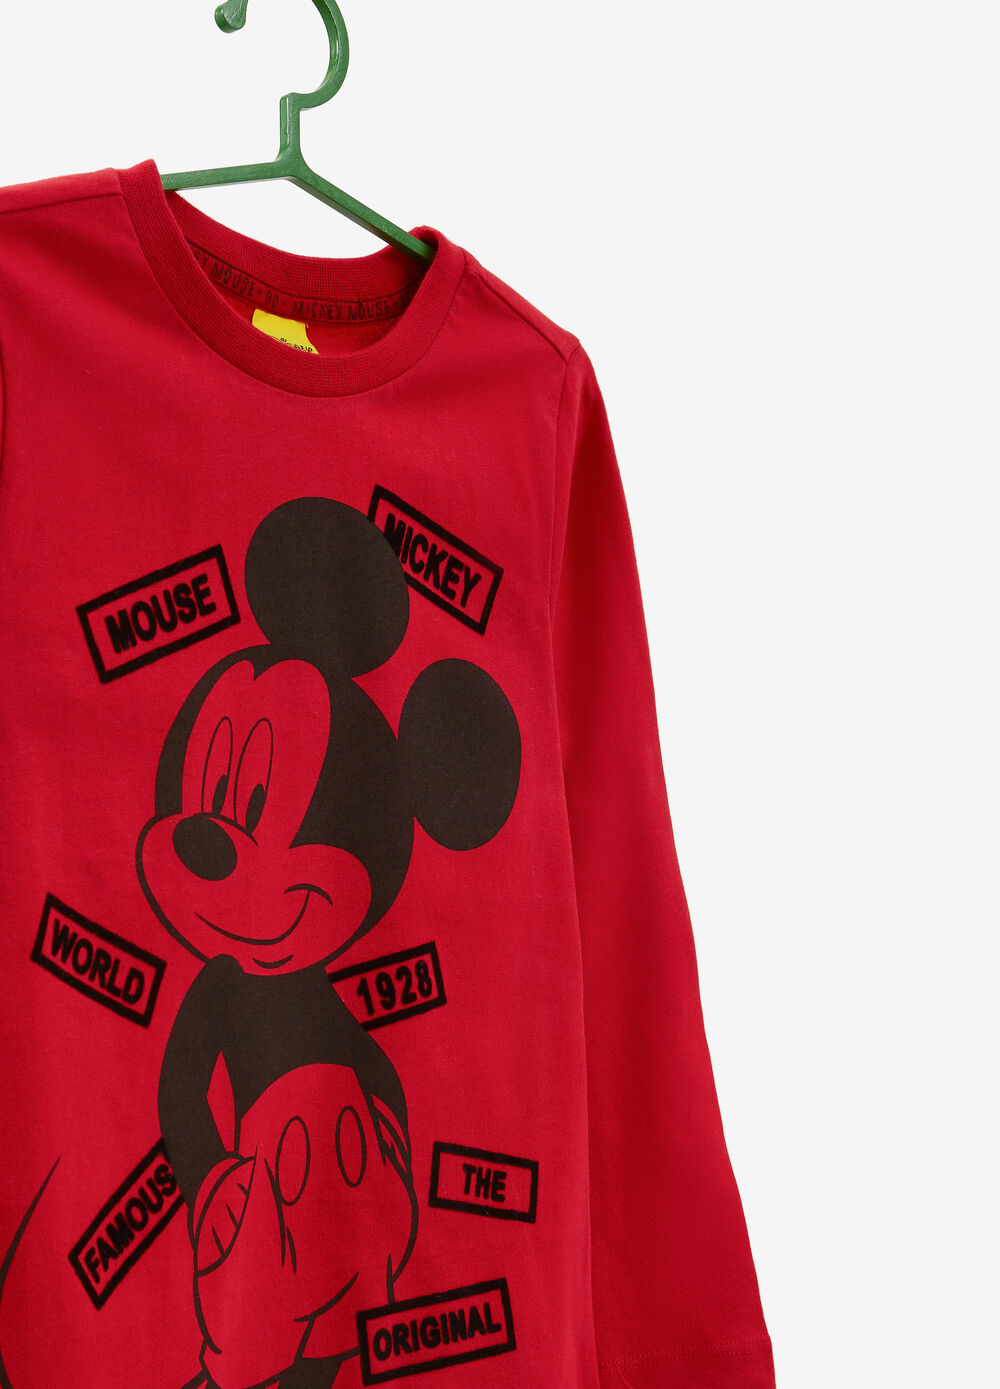 T-shirt puro cotone stampa Mickey Mouse